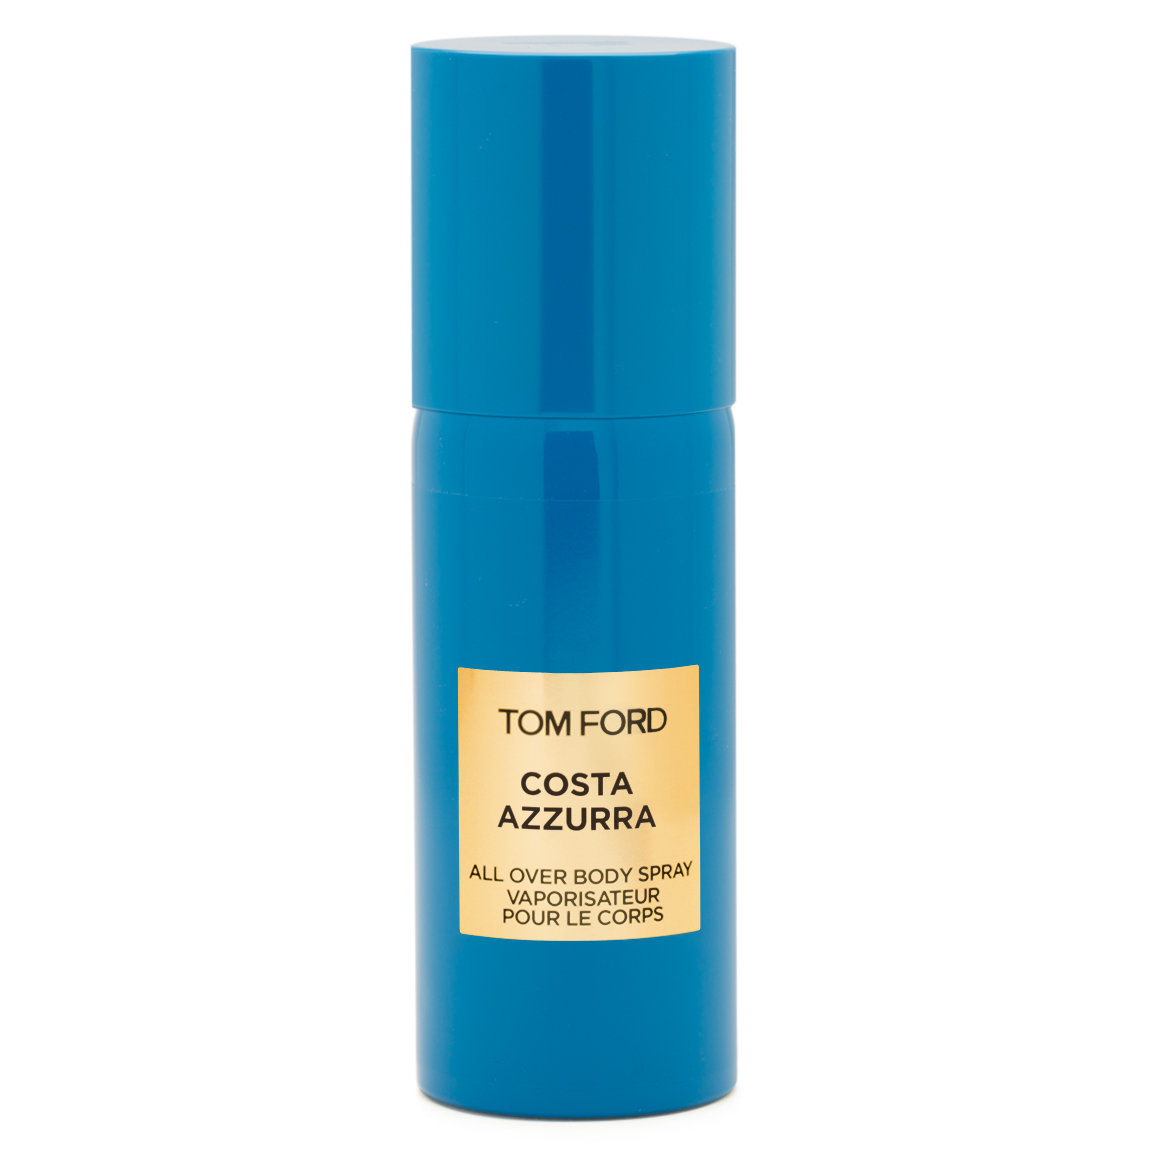 TOM FORD Costa Azzurra All Over Body Spray product swatch.